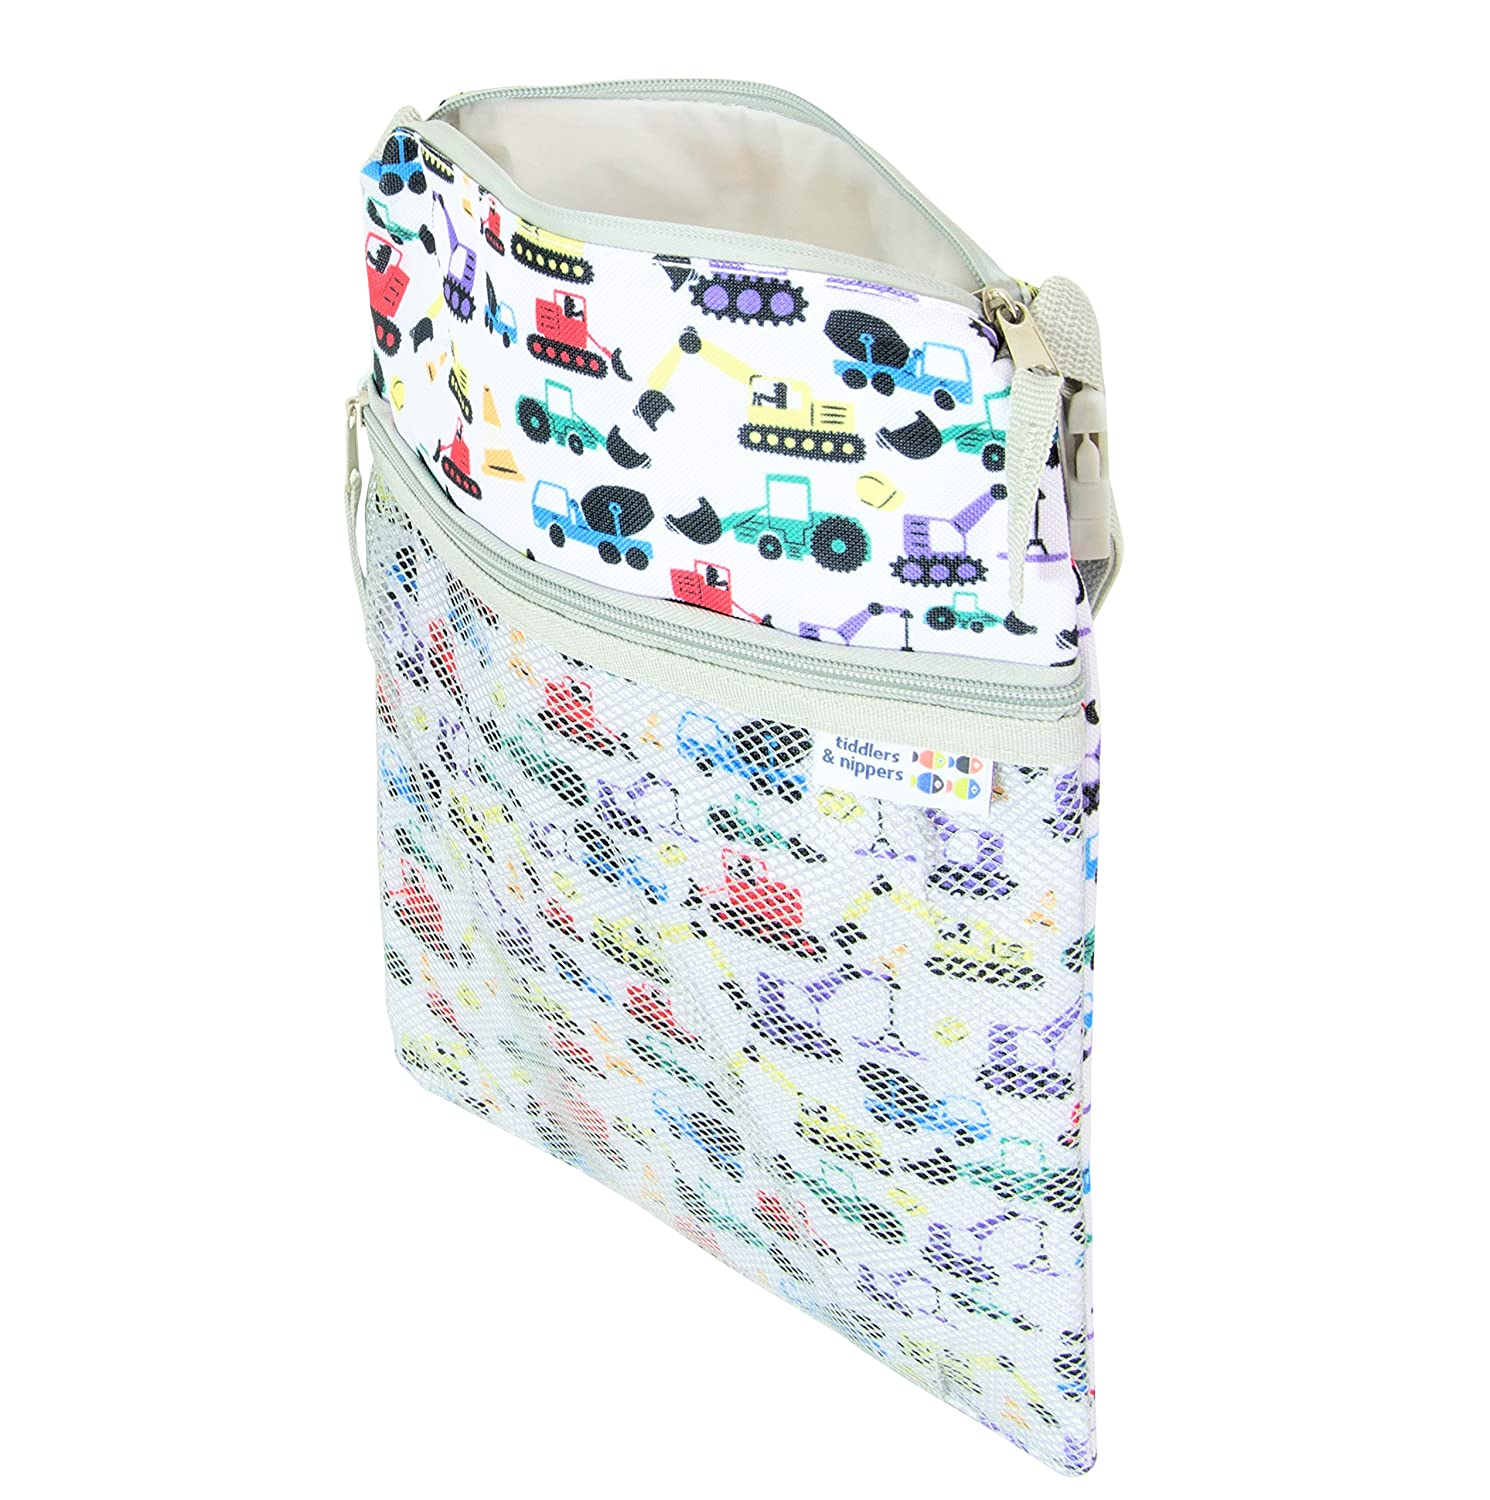 tiddlers & nippers | Wet/Dry Bag | Leak Proof Section for Wet Items/Nappies | External Pocket for Dry Items | Lightweight, Waterproof & Keeps Wet/Dry 100% Separate (Diggers Design)